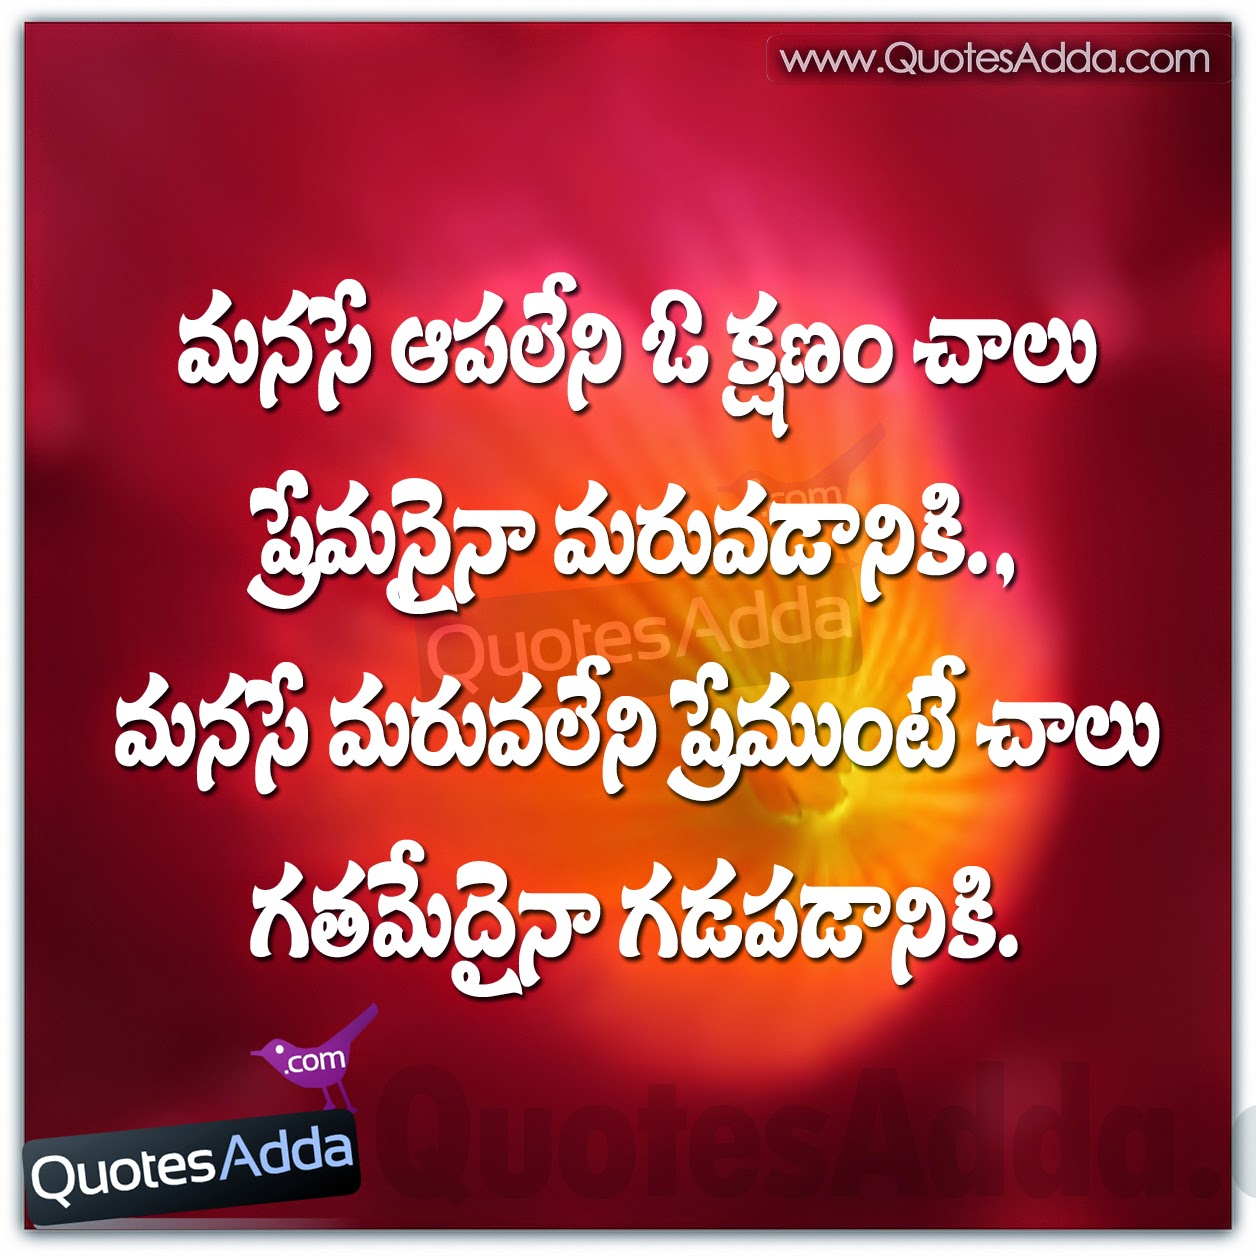 Telugu Love Quote Photos Latest Telugu Love Quotations